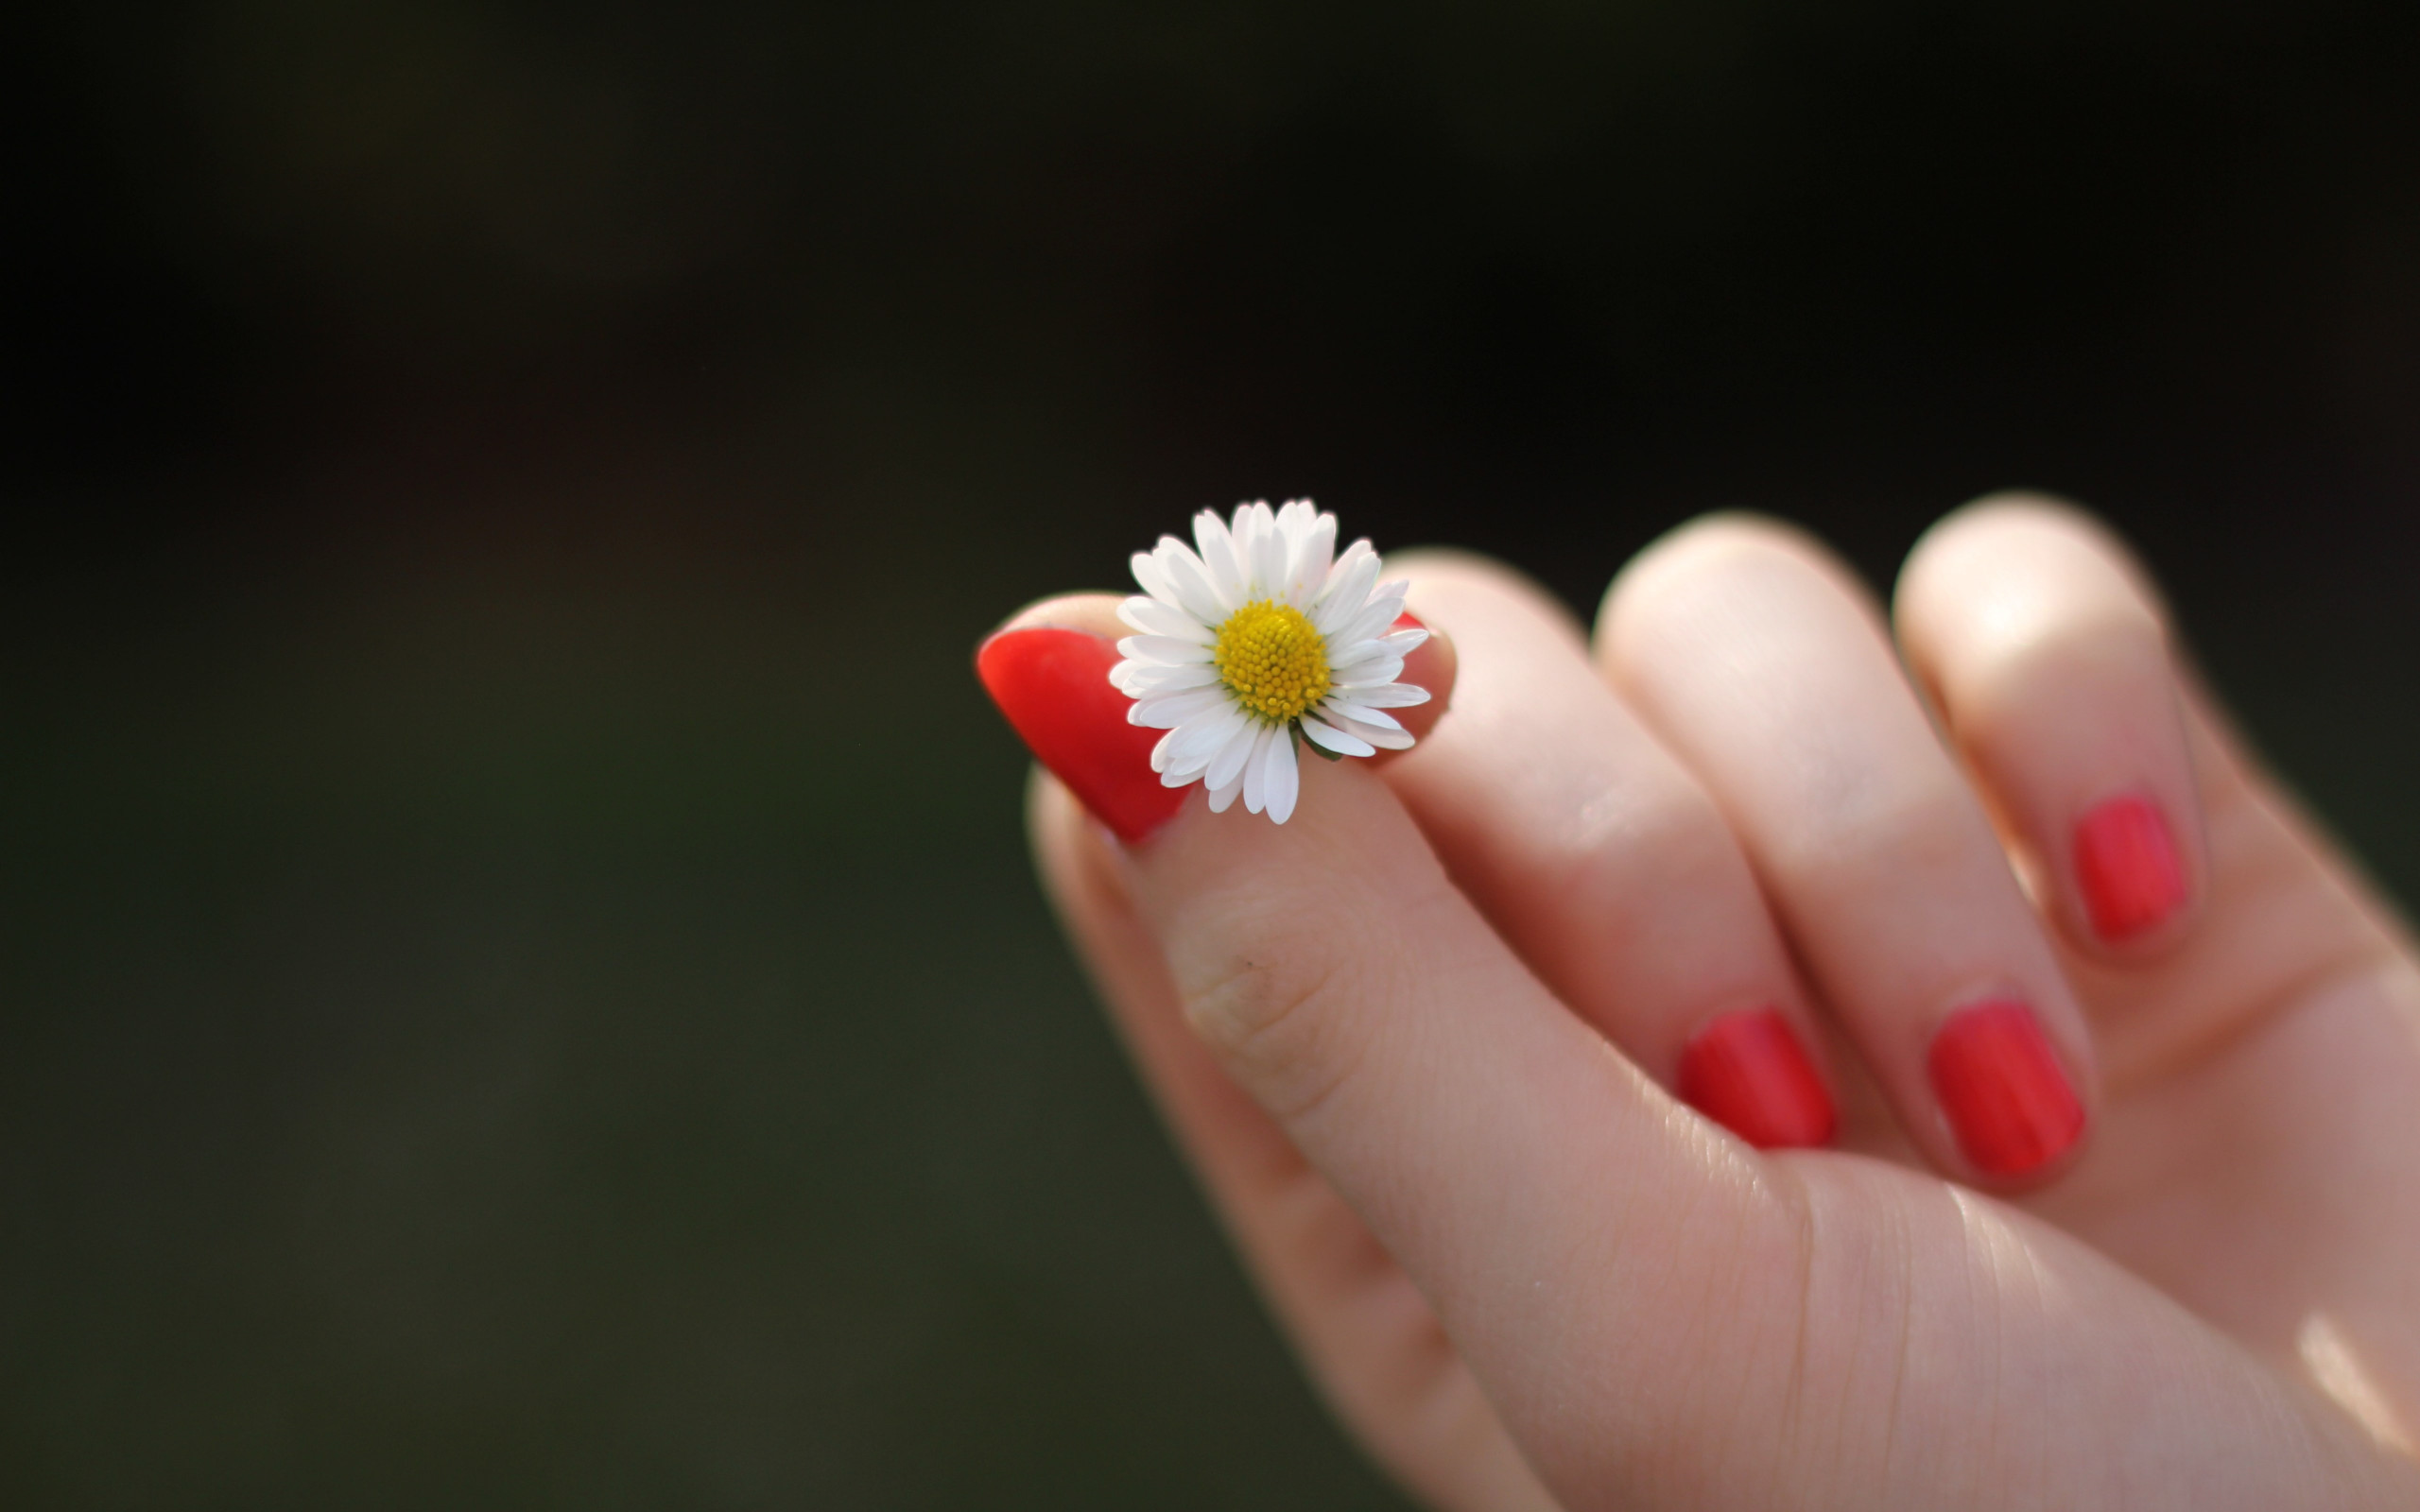 Girl with red nails and a daisy flower wallpaper 2560x1600